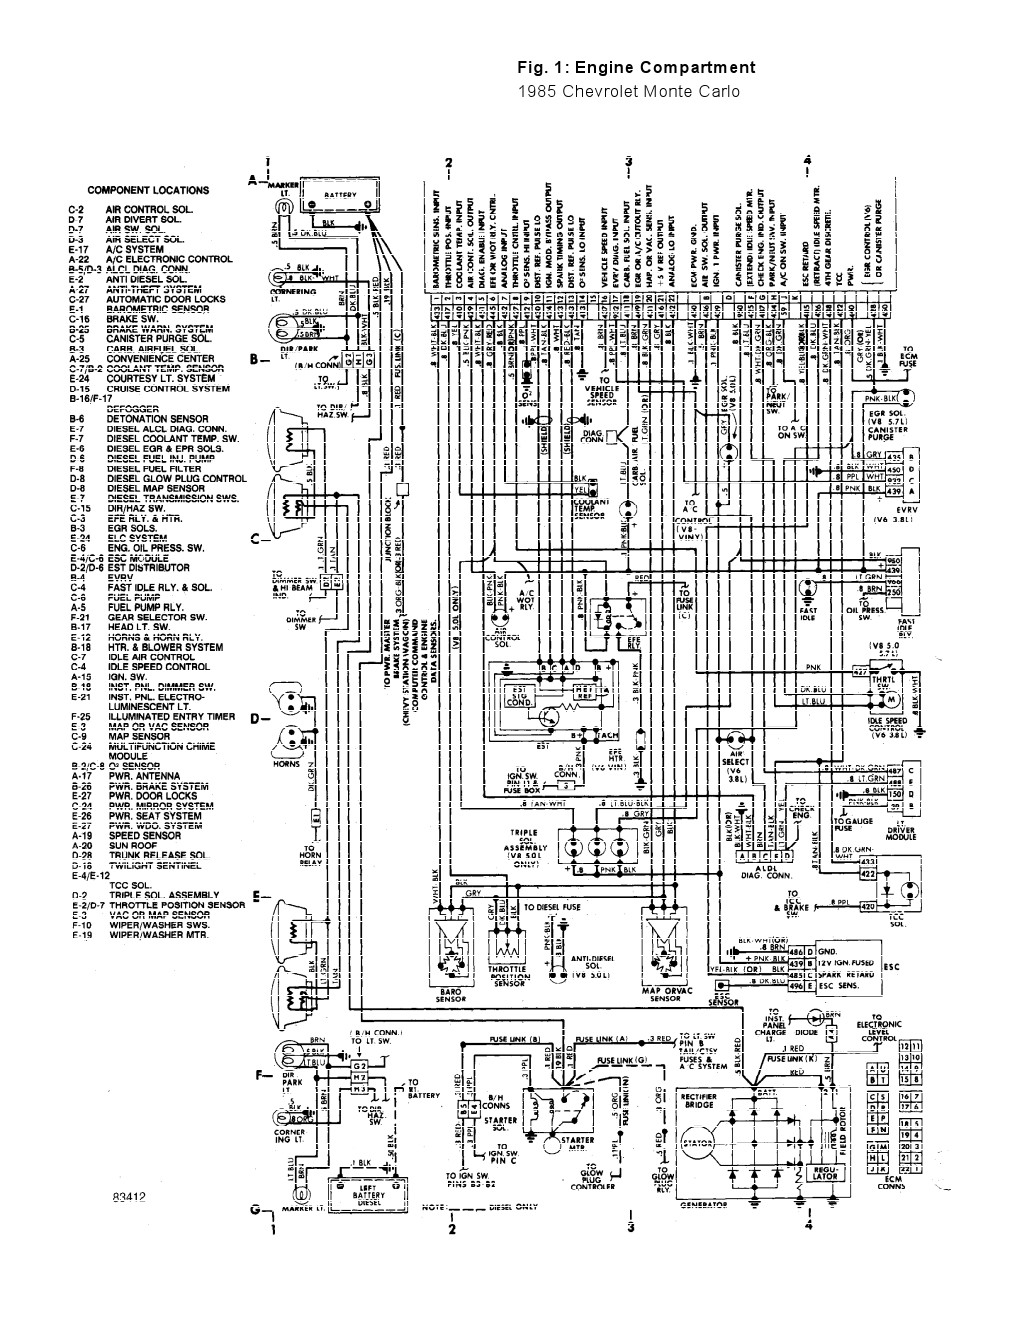 2002 Monte Carlo Engine Diagram